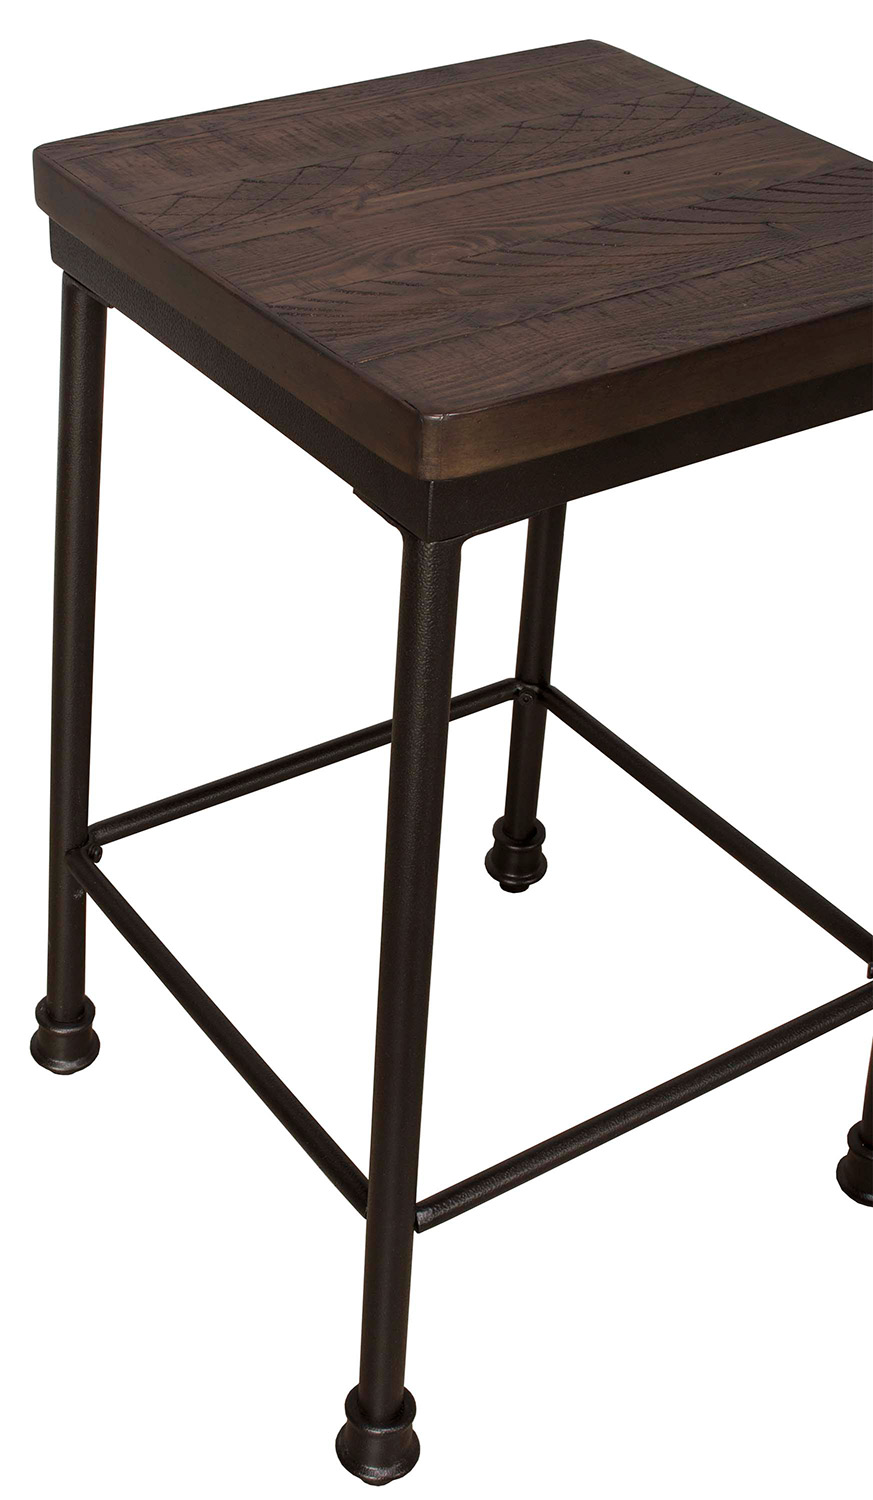 Hillsdale Castille Non-Swivel Counter Height Stool - Black/Walnut